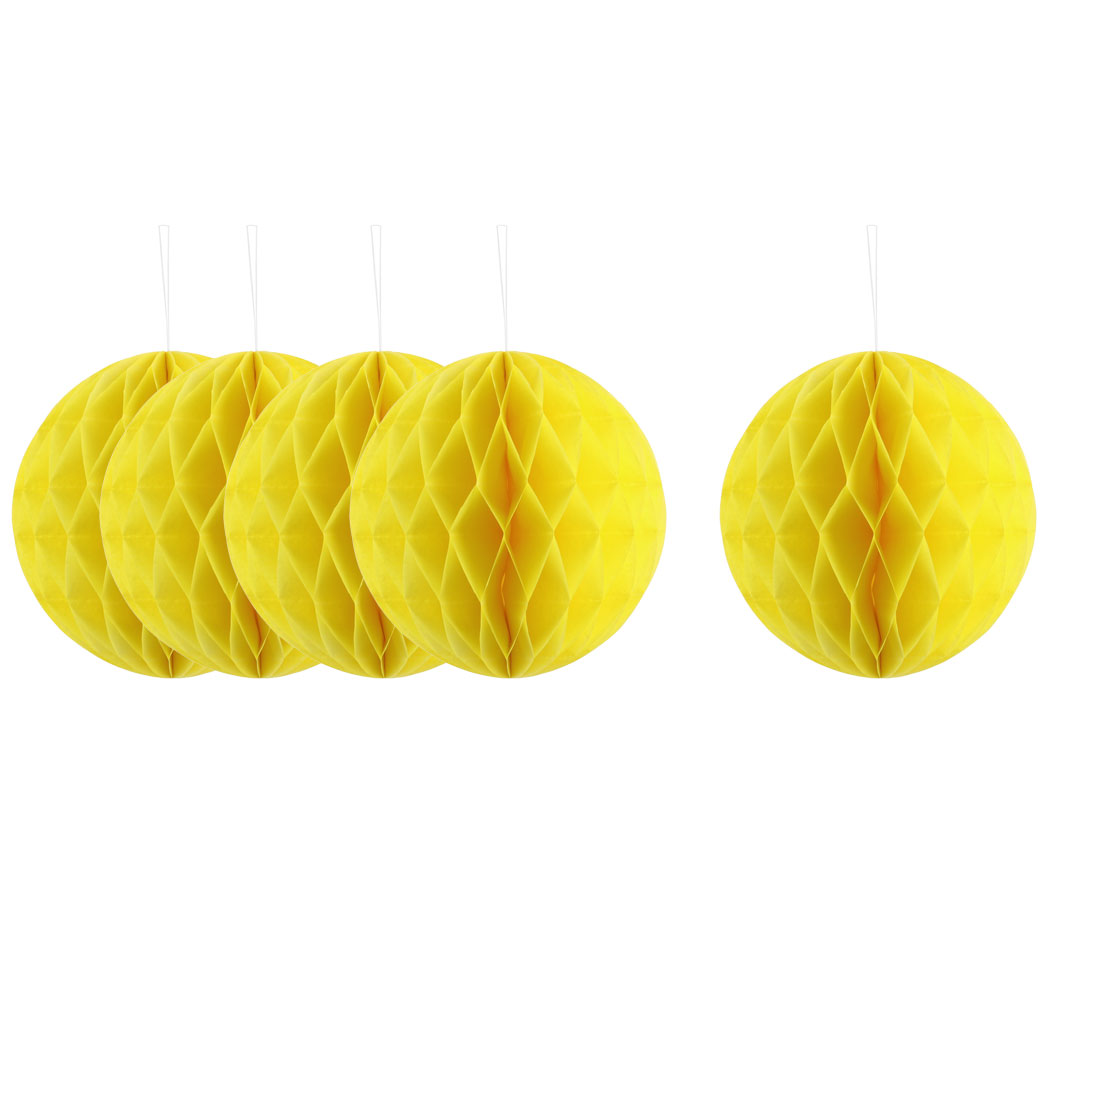 Festival Paper Handmade DIY Hanging Decor Honeycomb Ball Lantern Yellow 8 Inches 5pcs